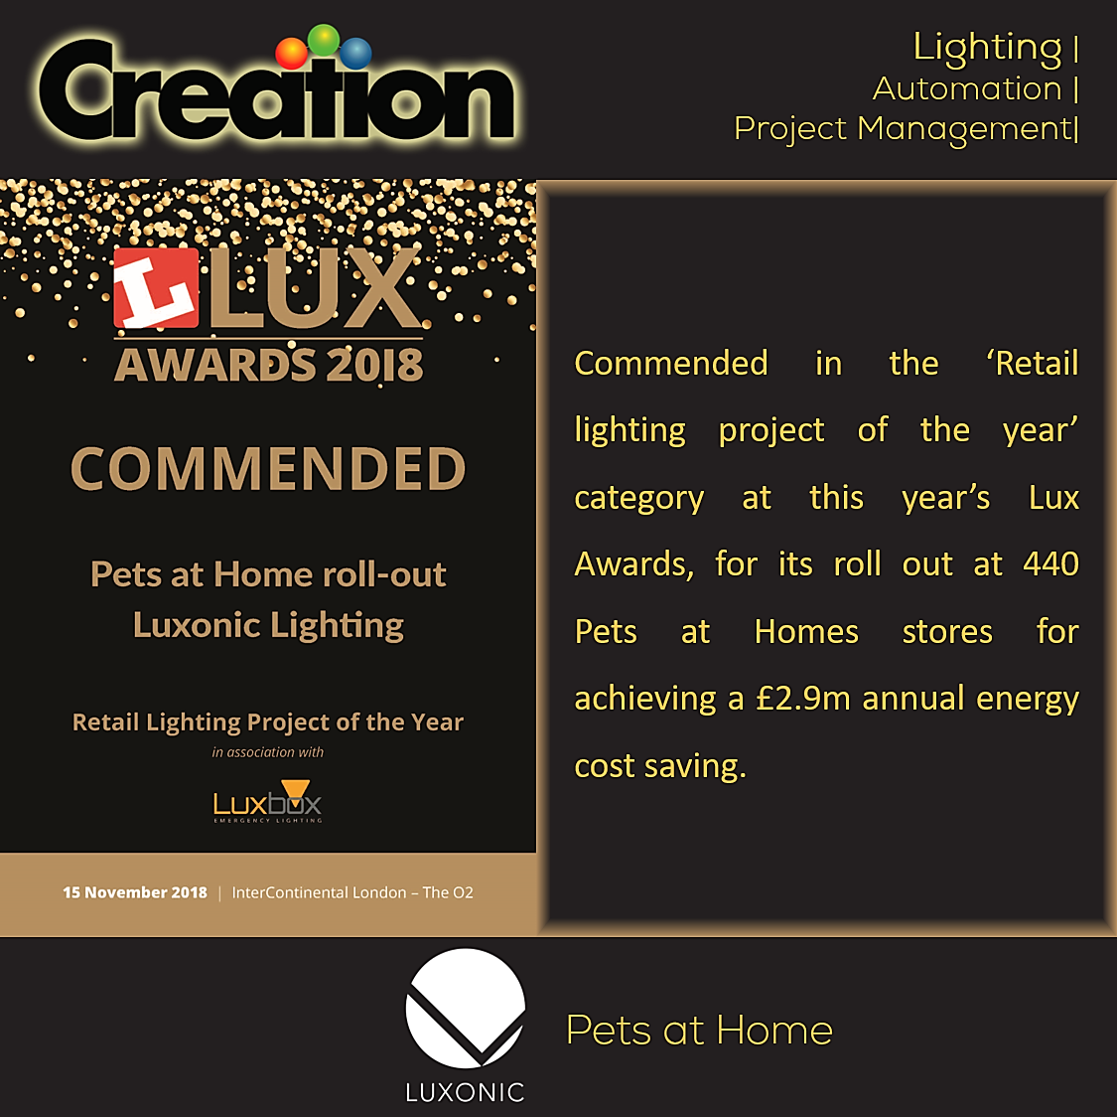 Large spaces? Heavy electricty bills? Switch to #HI_Max by @_luxonic from UK. Commended at #LuxAwards 2018, for its roll out at 440 'Pets at Homes Stores' for achieving a £2.9m annual #energy cost #saving, Hi-Max is THE solution you are looking for! https://goo.gl/px6z2k.